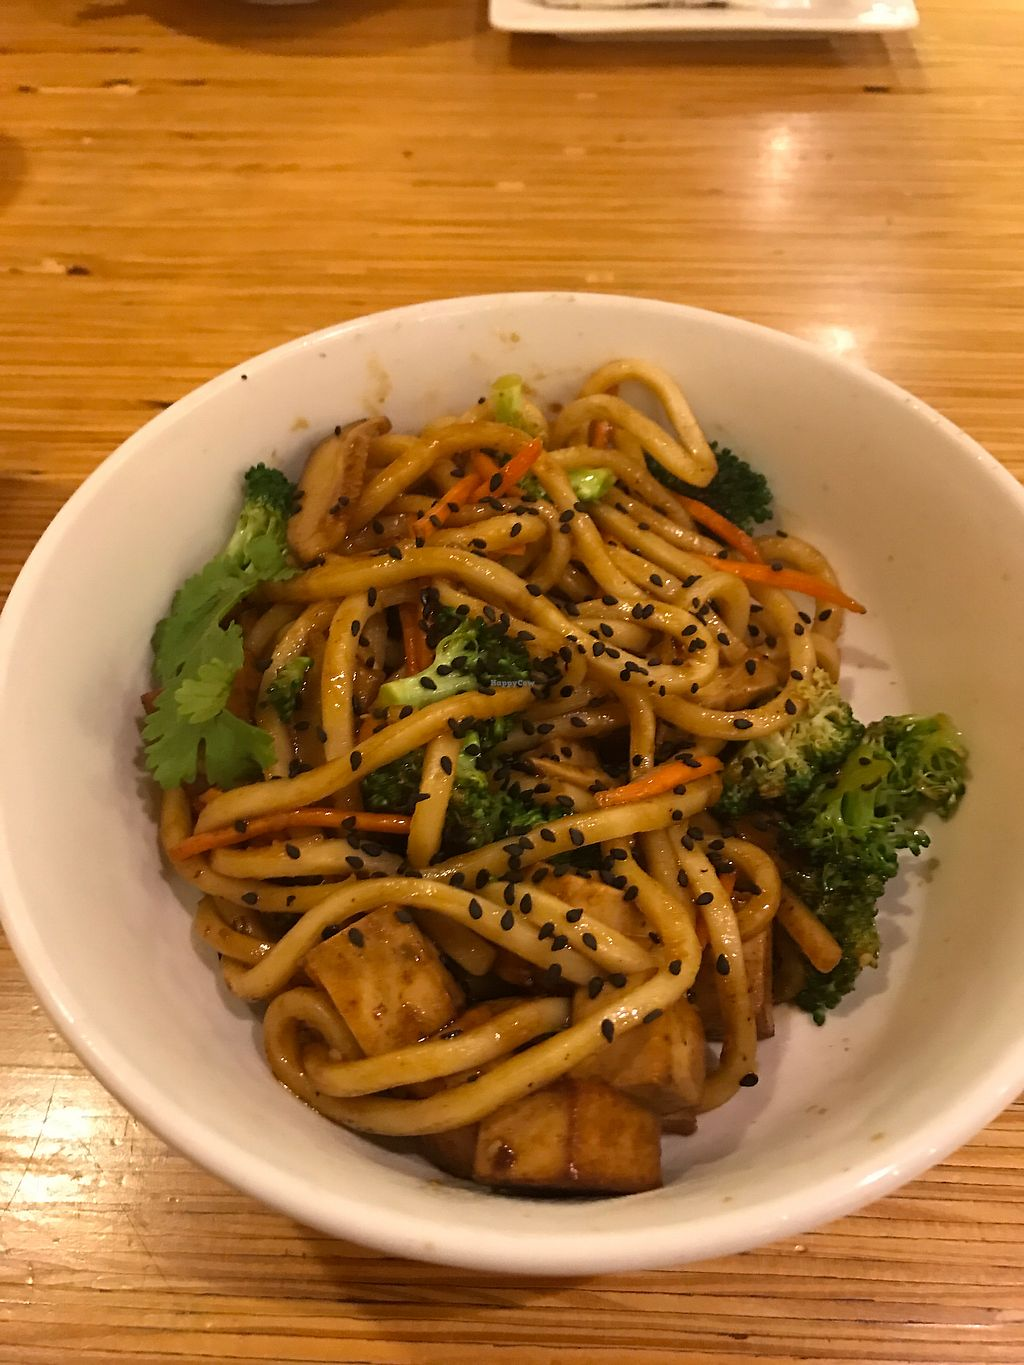 """Photo of Noodles and Company  by <a href=""""/members/profile/LER2017"""">LER2017</a> <br/>Japanese pan noodles (vegan) with tofu and extra broccoli  <br/> August 12, 2017  - <a href='/contact/abuse/image/35279/291765'>Report</a>"""